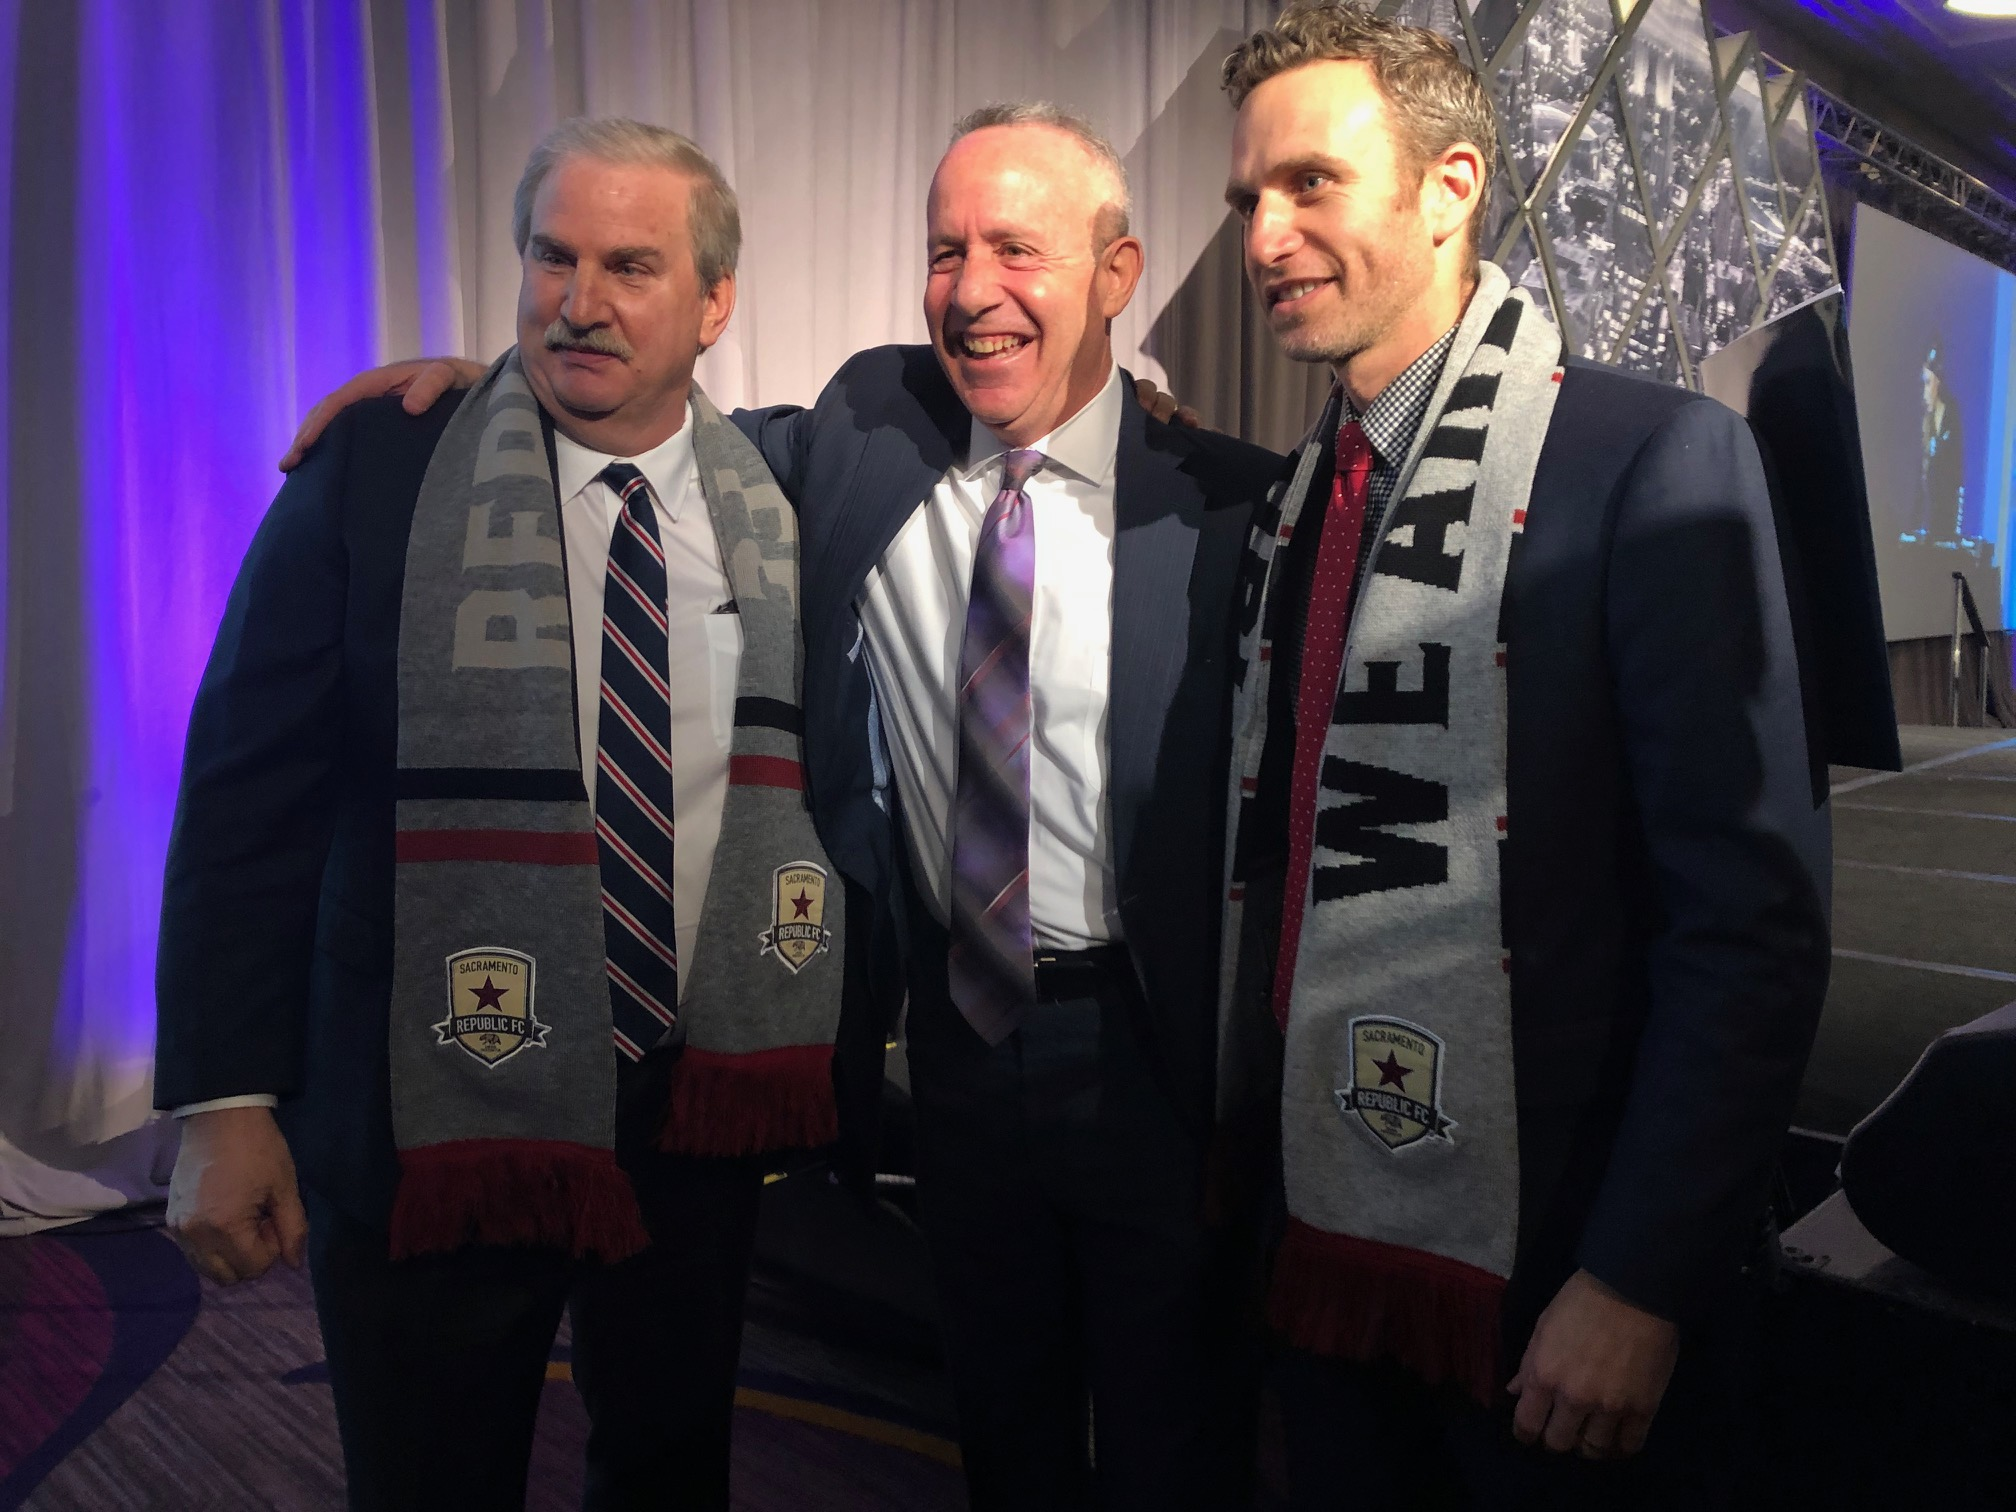 Republic FC's Kevin Nagle (left) and Ben Gumpert (right) with Mayor Darrell Steinberg